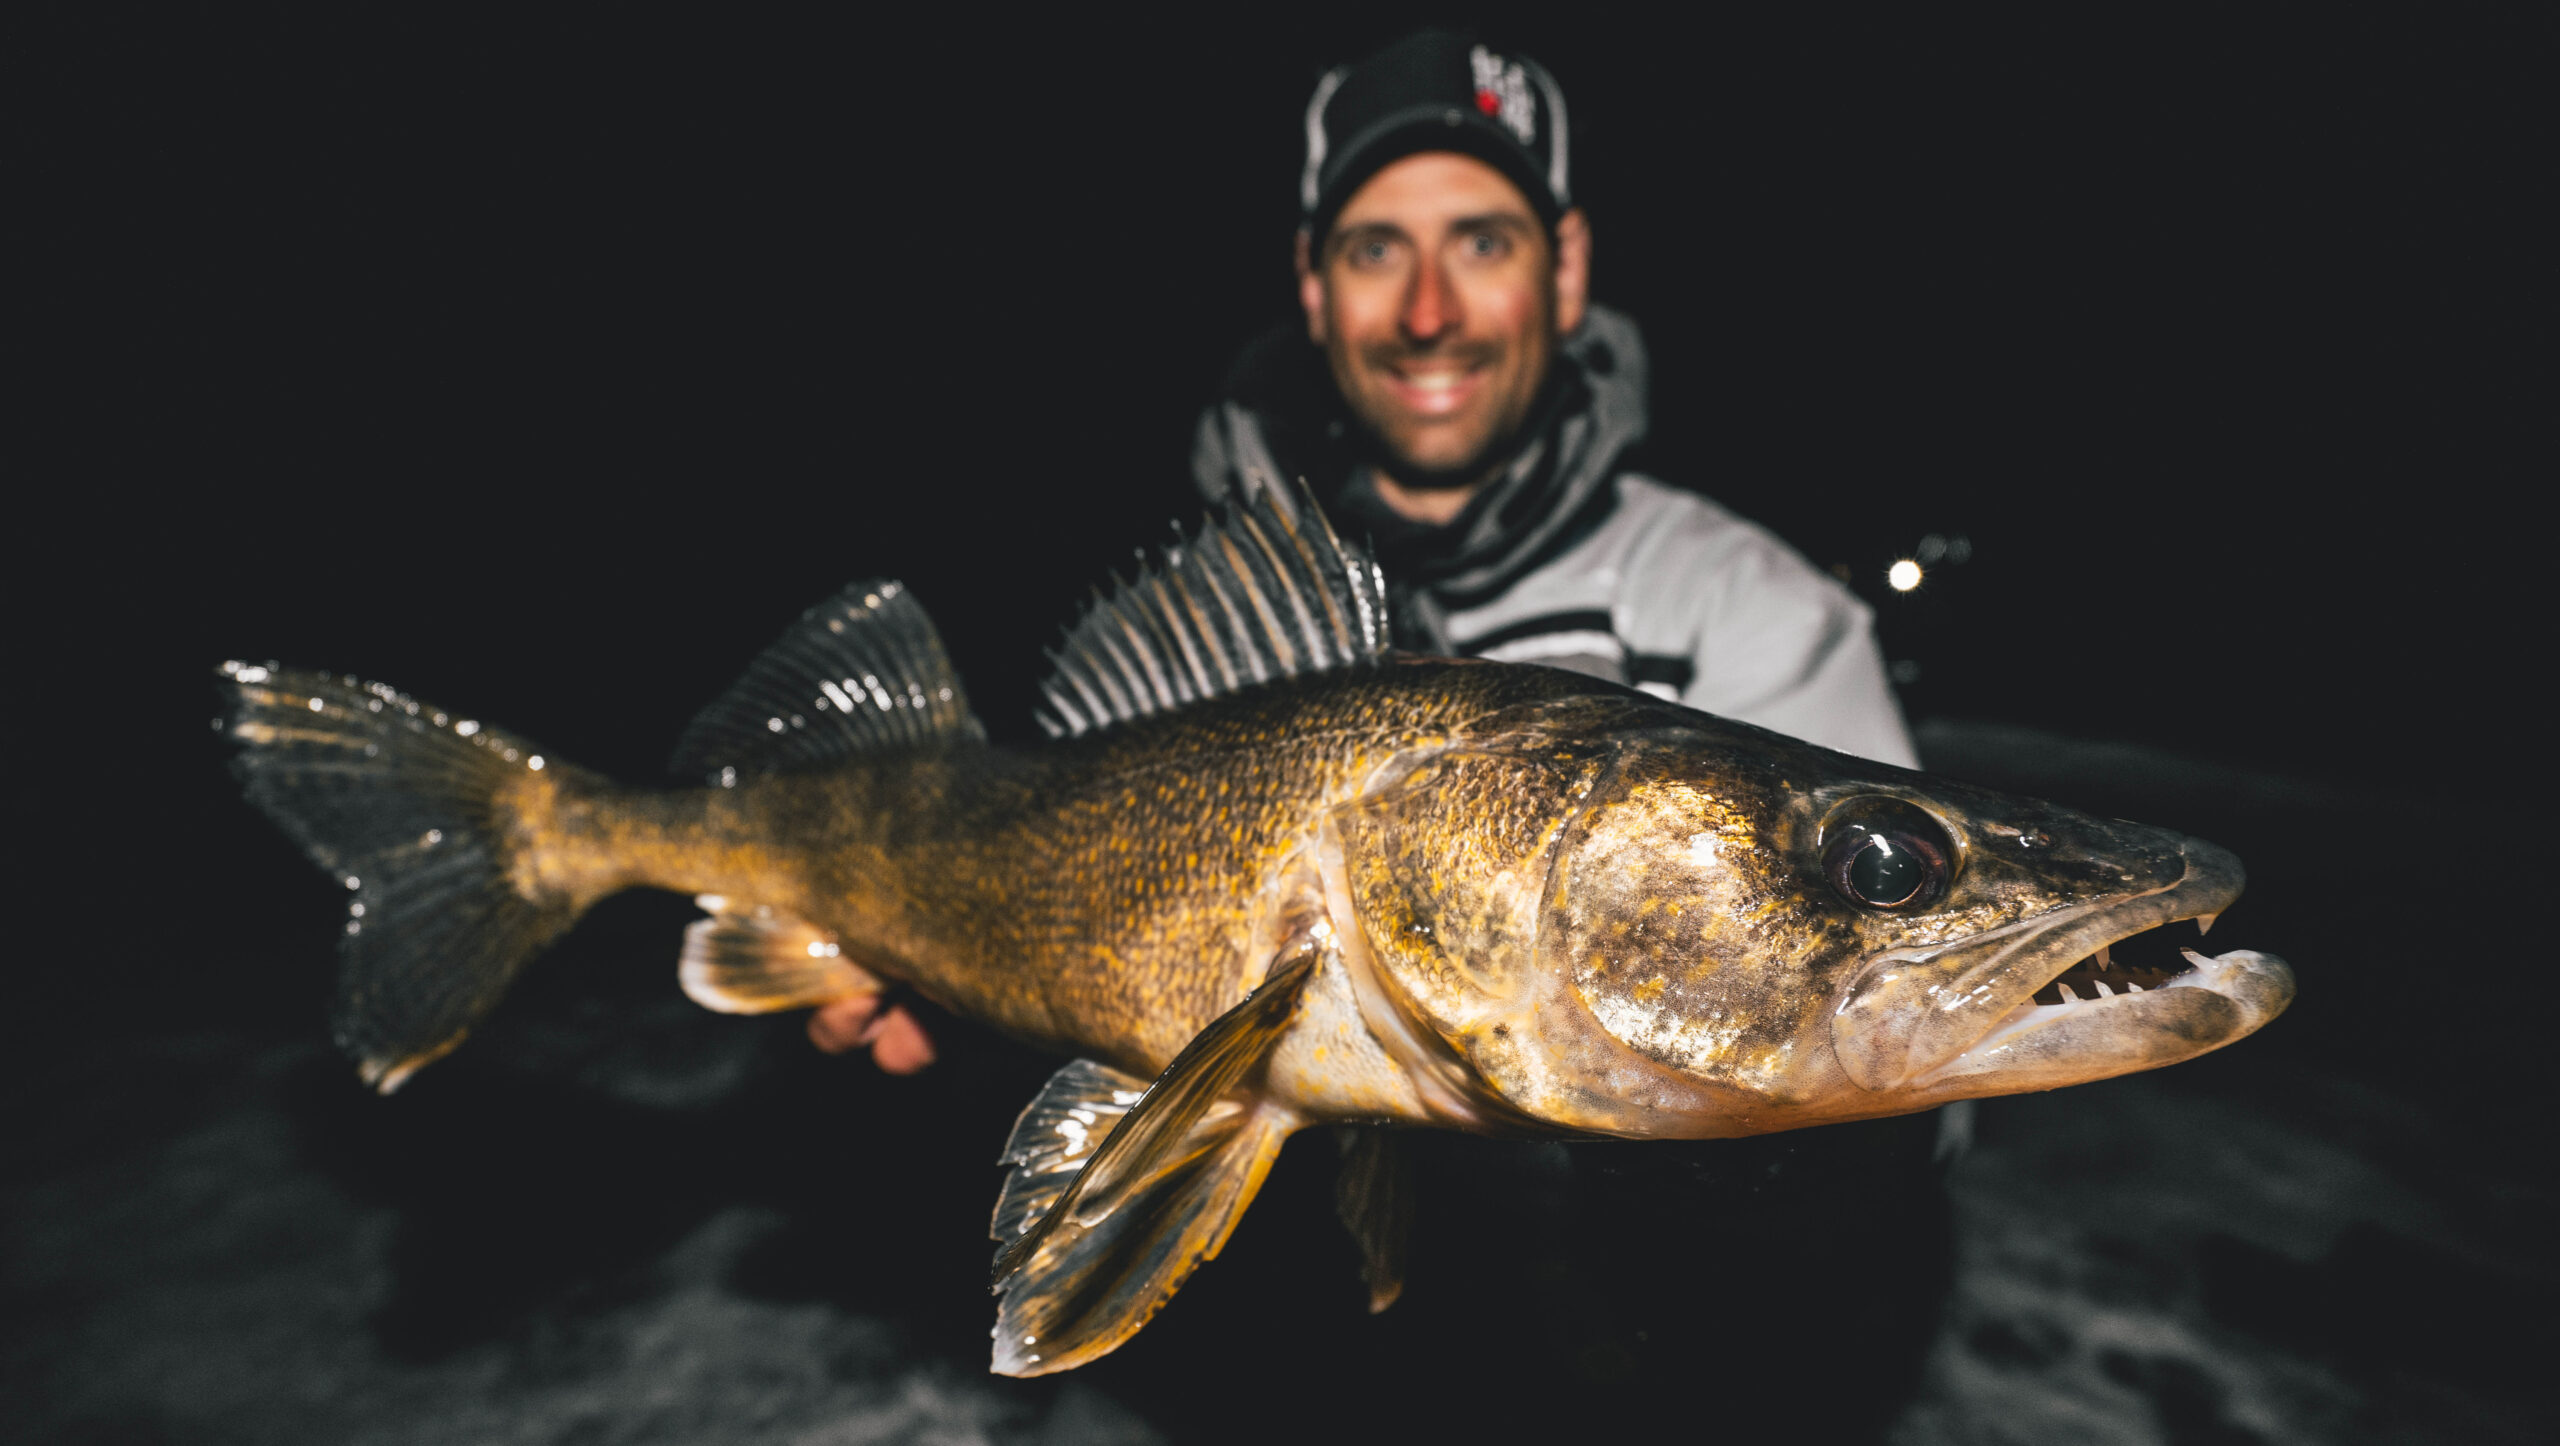 Manitoba walleye